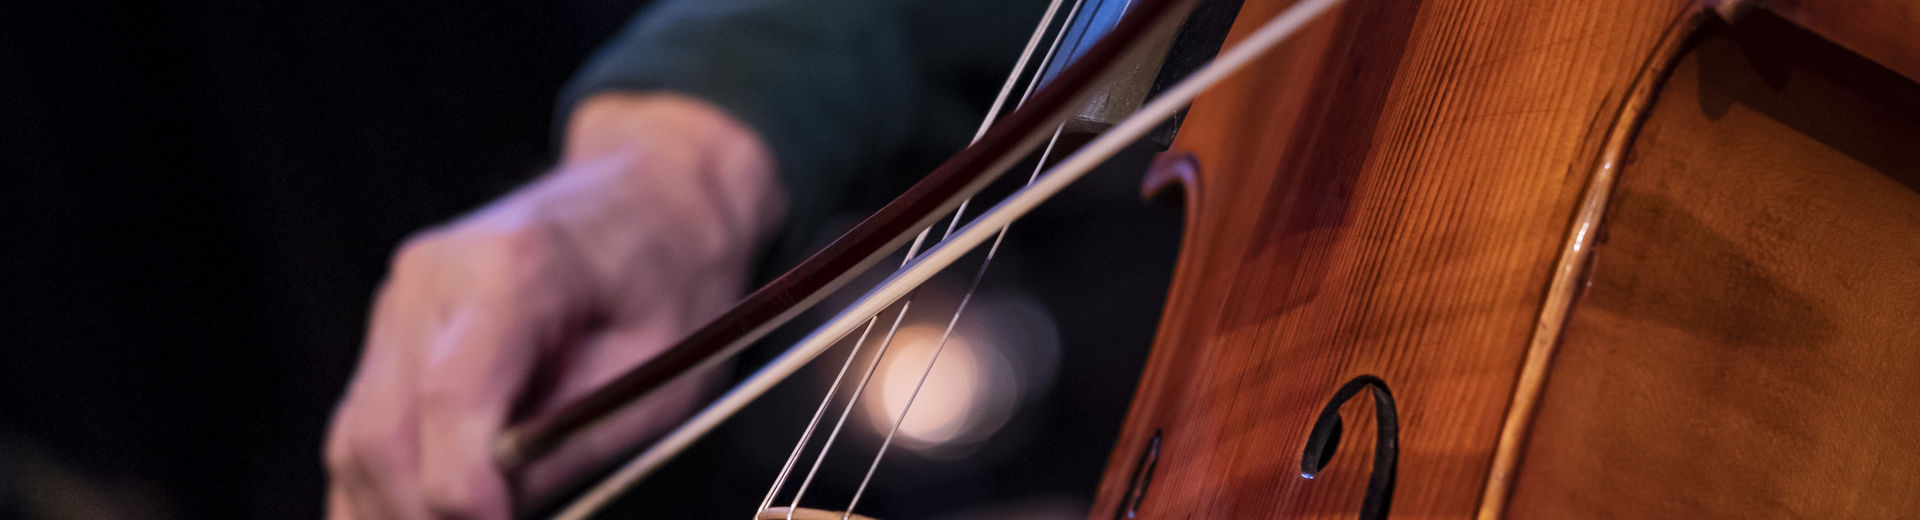 Close up image of a student playing the cello in a performance.